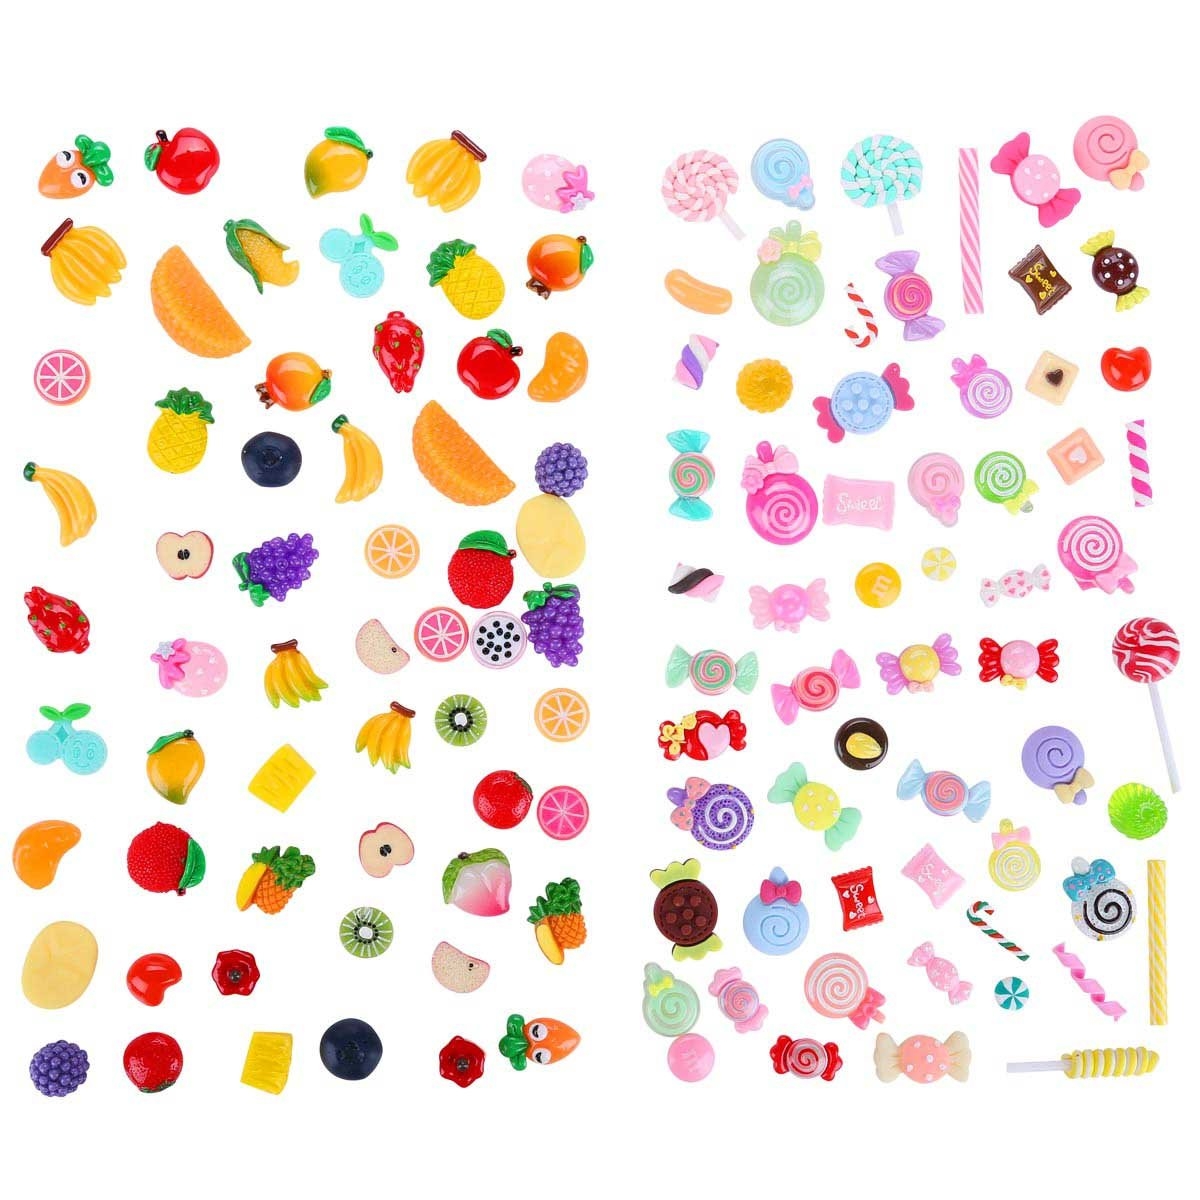 120 PCS Mixed Fruit and Sweet Candy Slime Charms Slices with Flatback for DIY Craft and Decoration Tbestmax